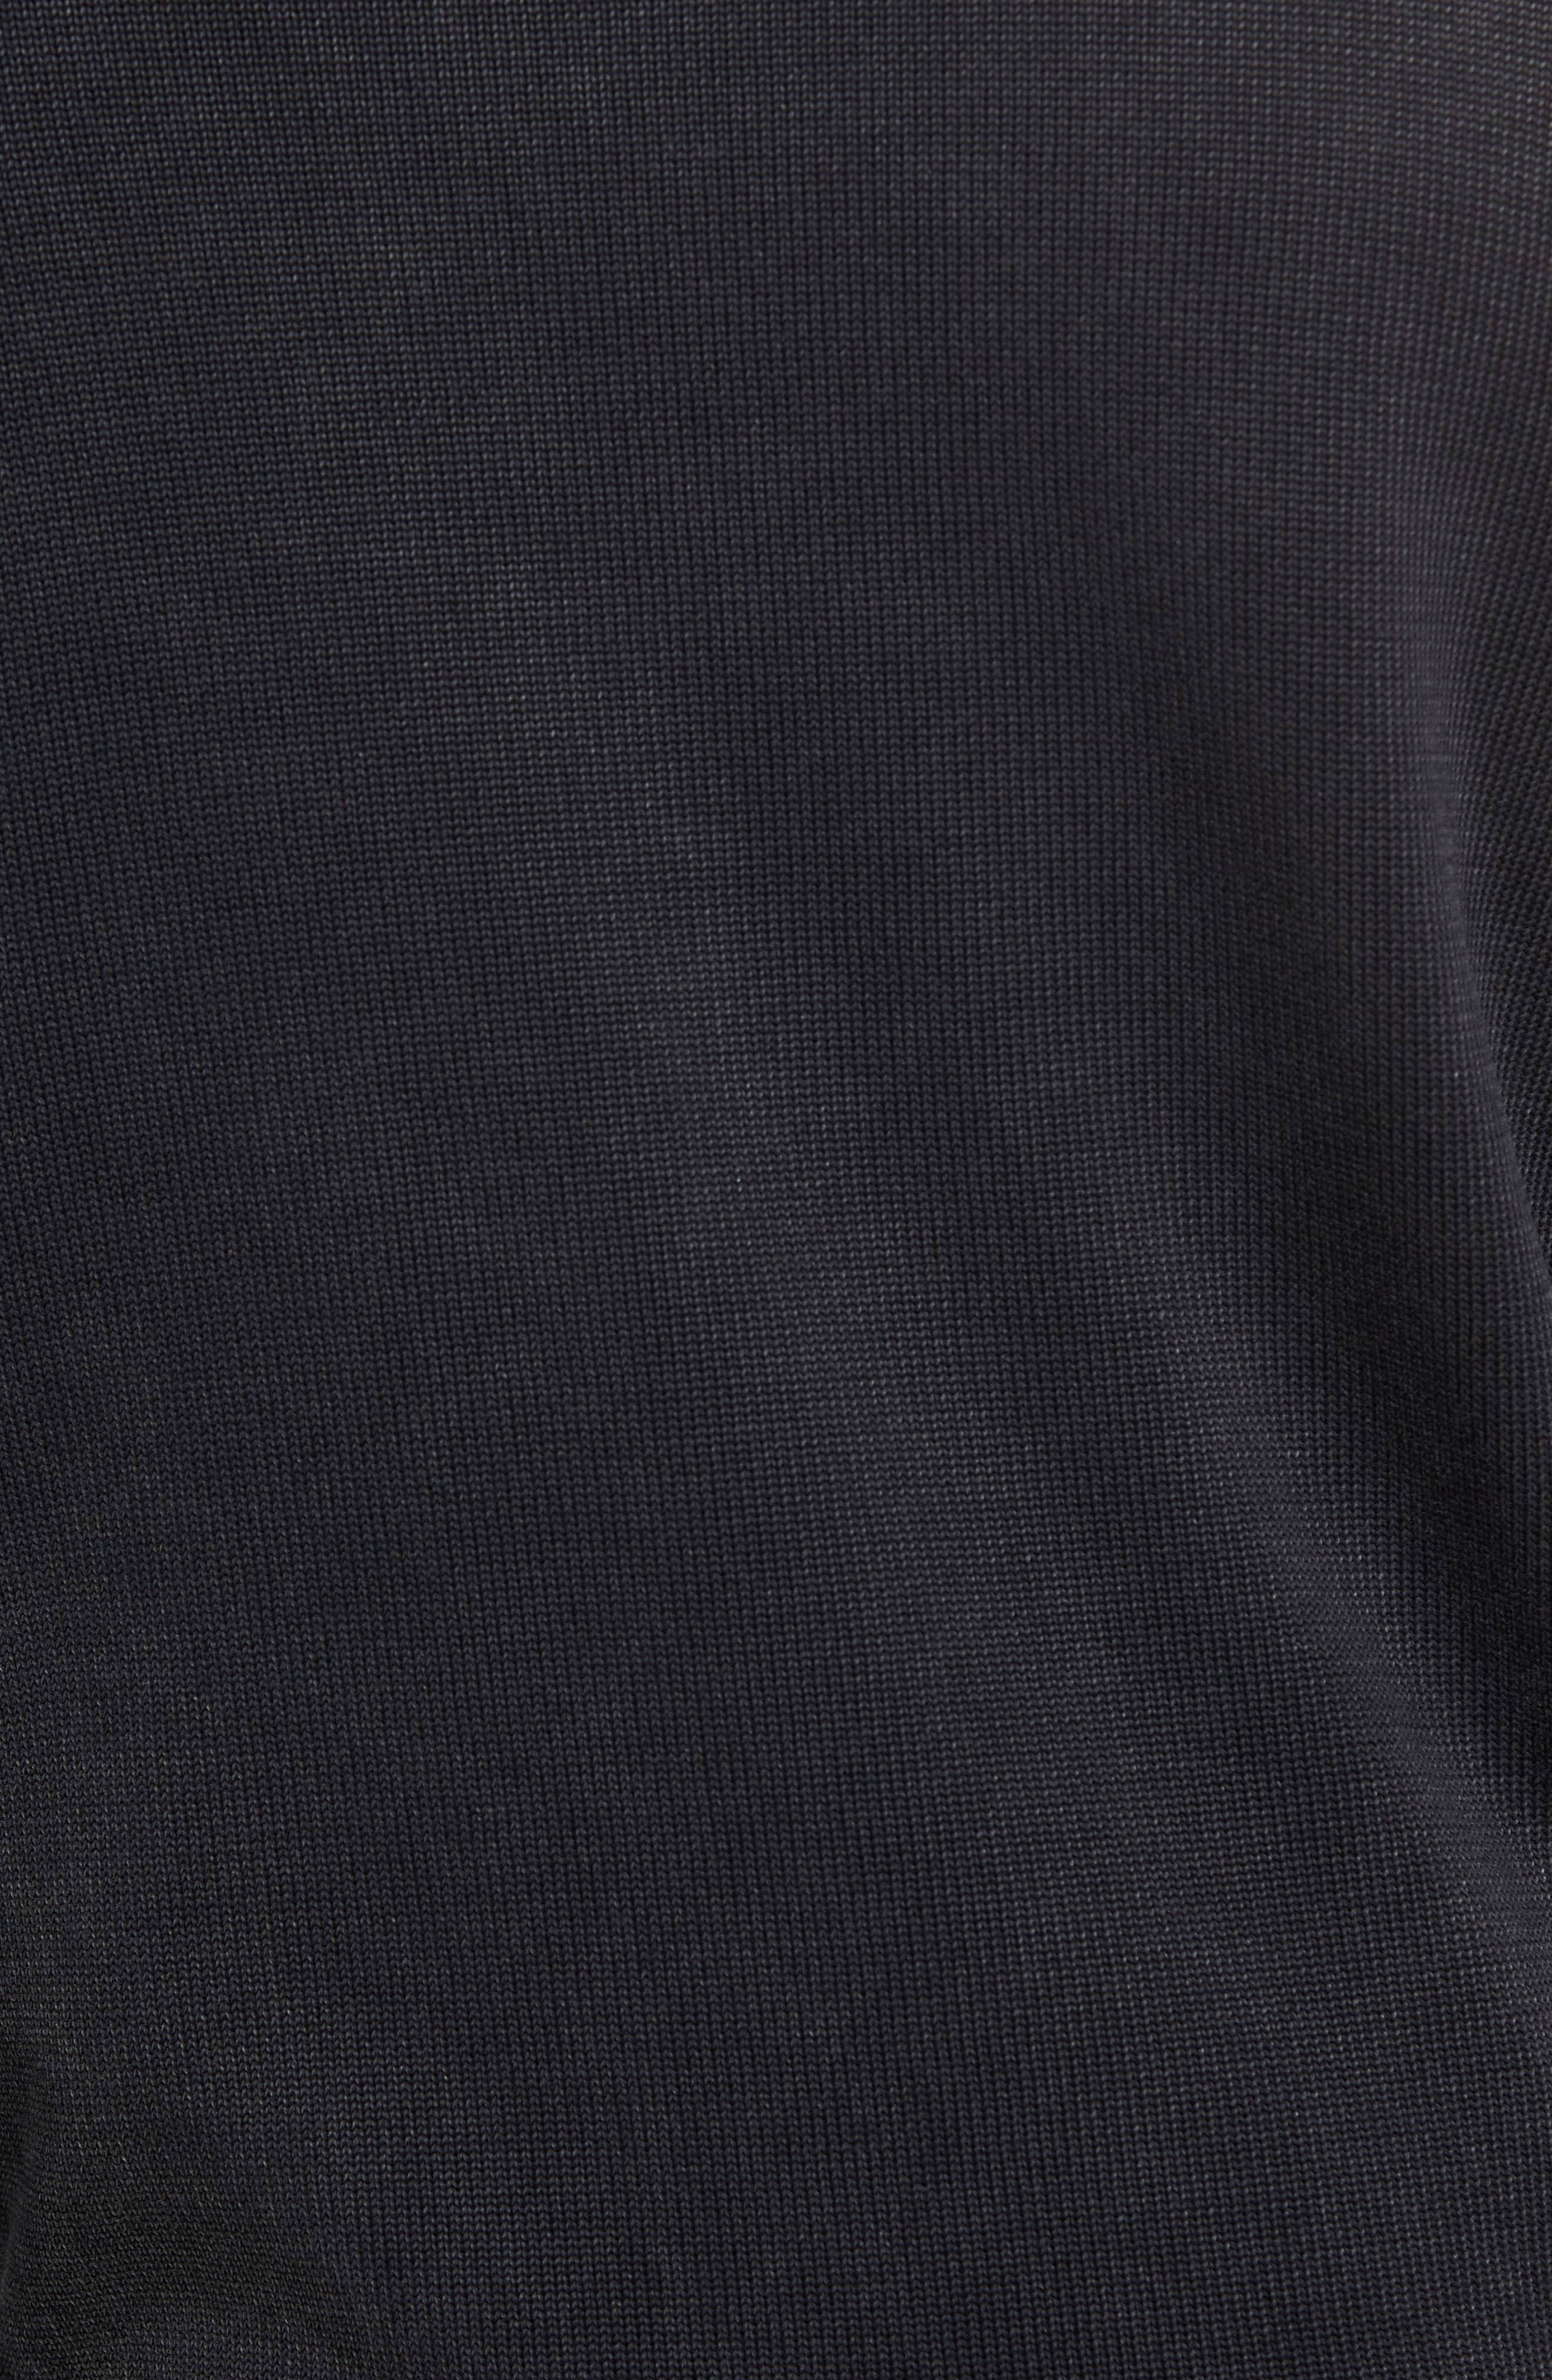 Crewneck Pullover,                             Alternate thumbnail 5, color,                             001